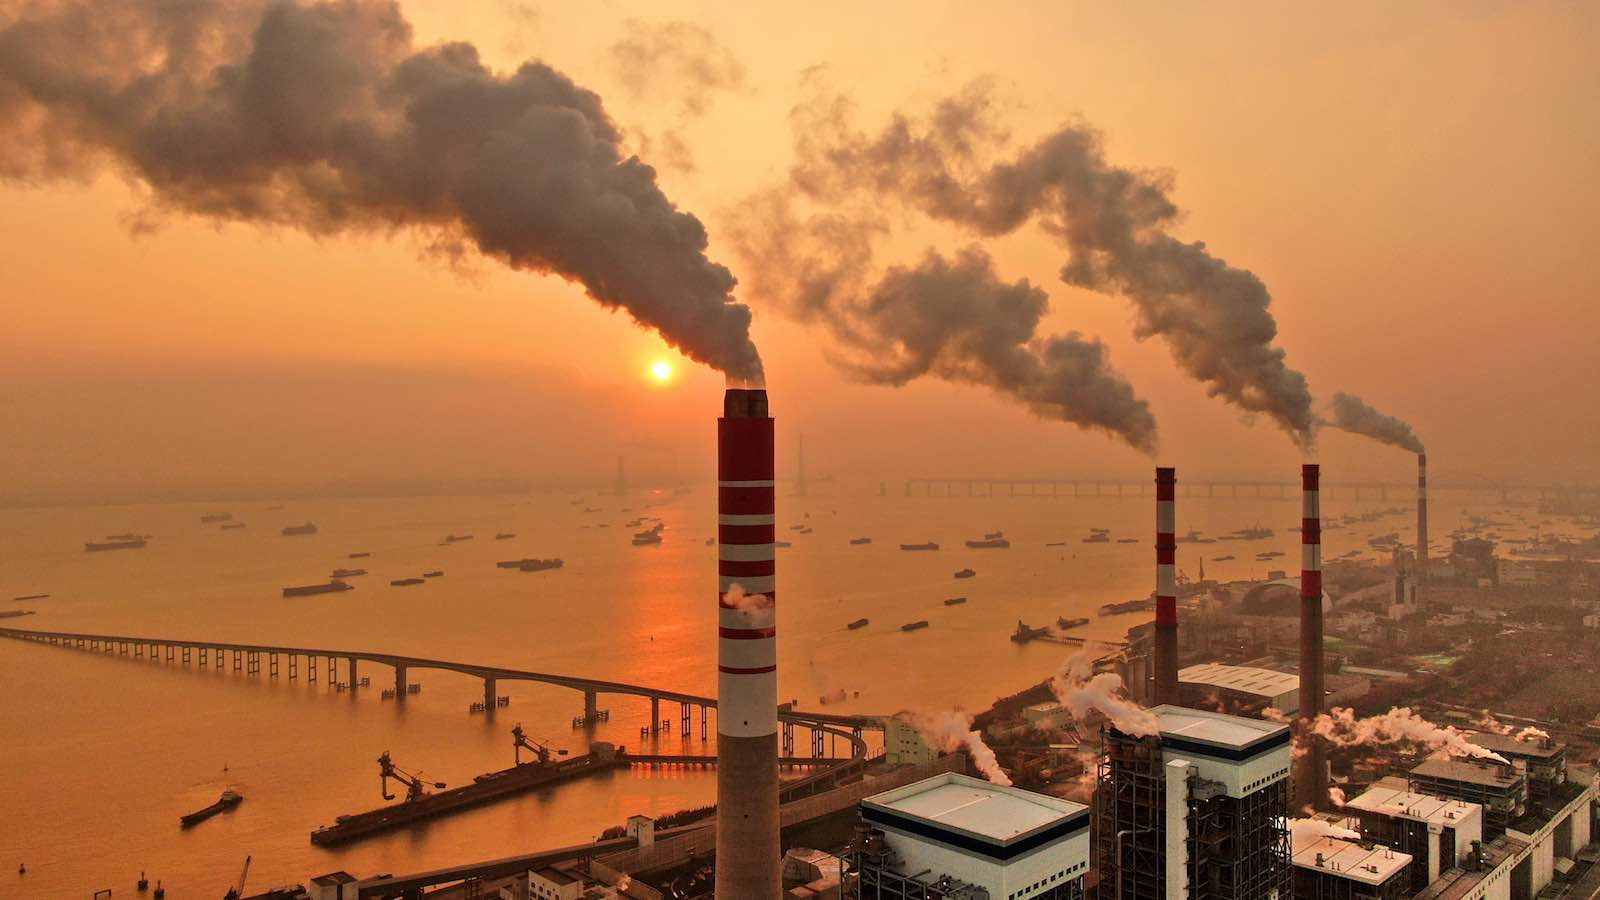 Nantong power station, a 3400-megawatt coal-fired power station in Jiangsu Province, China (Photo: Barcroft Media via Getty)